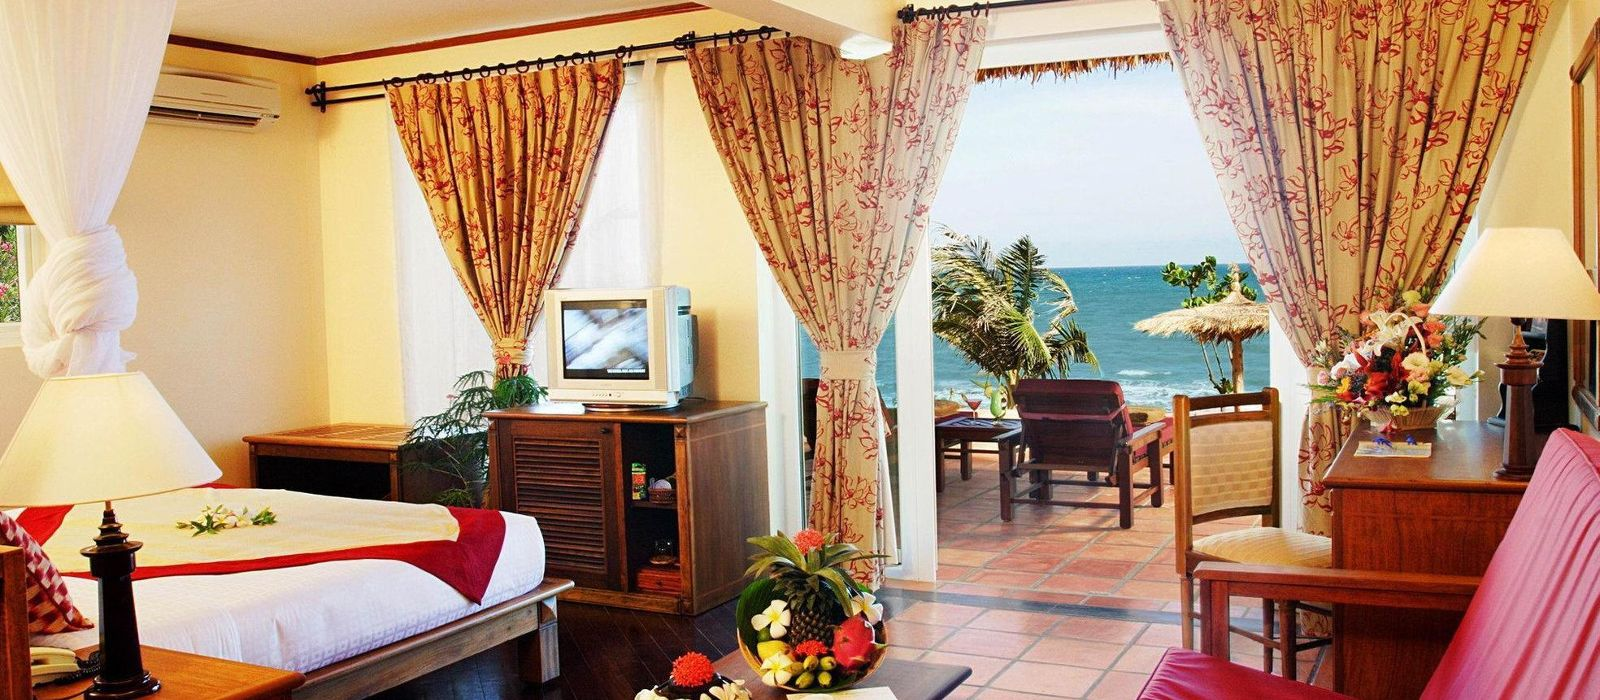 Hotel Das Victoria Phan Thiet Beach Resort & Spa Vietnam